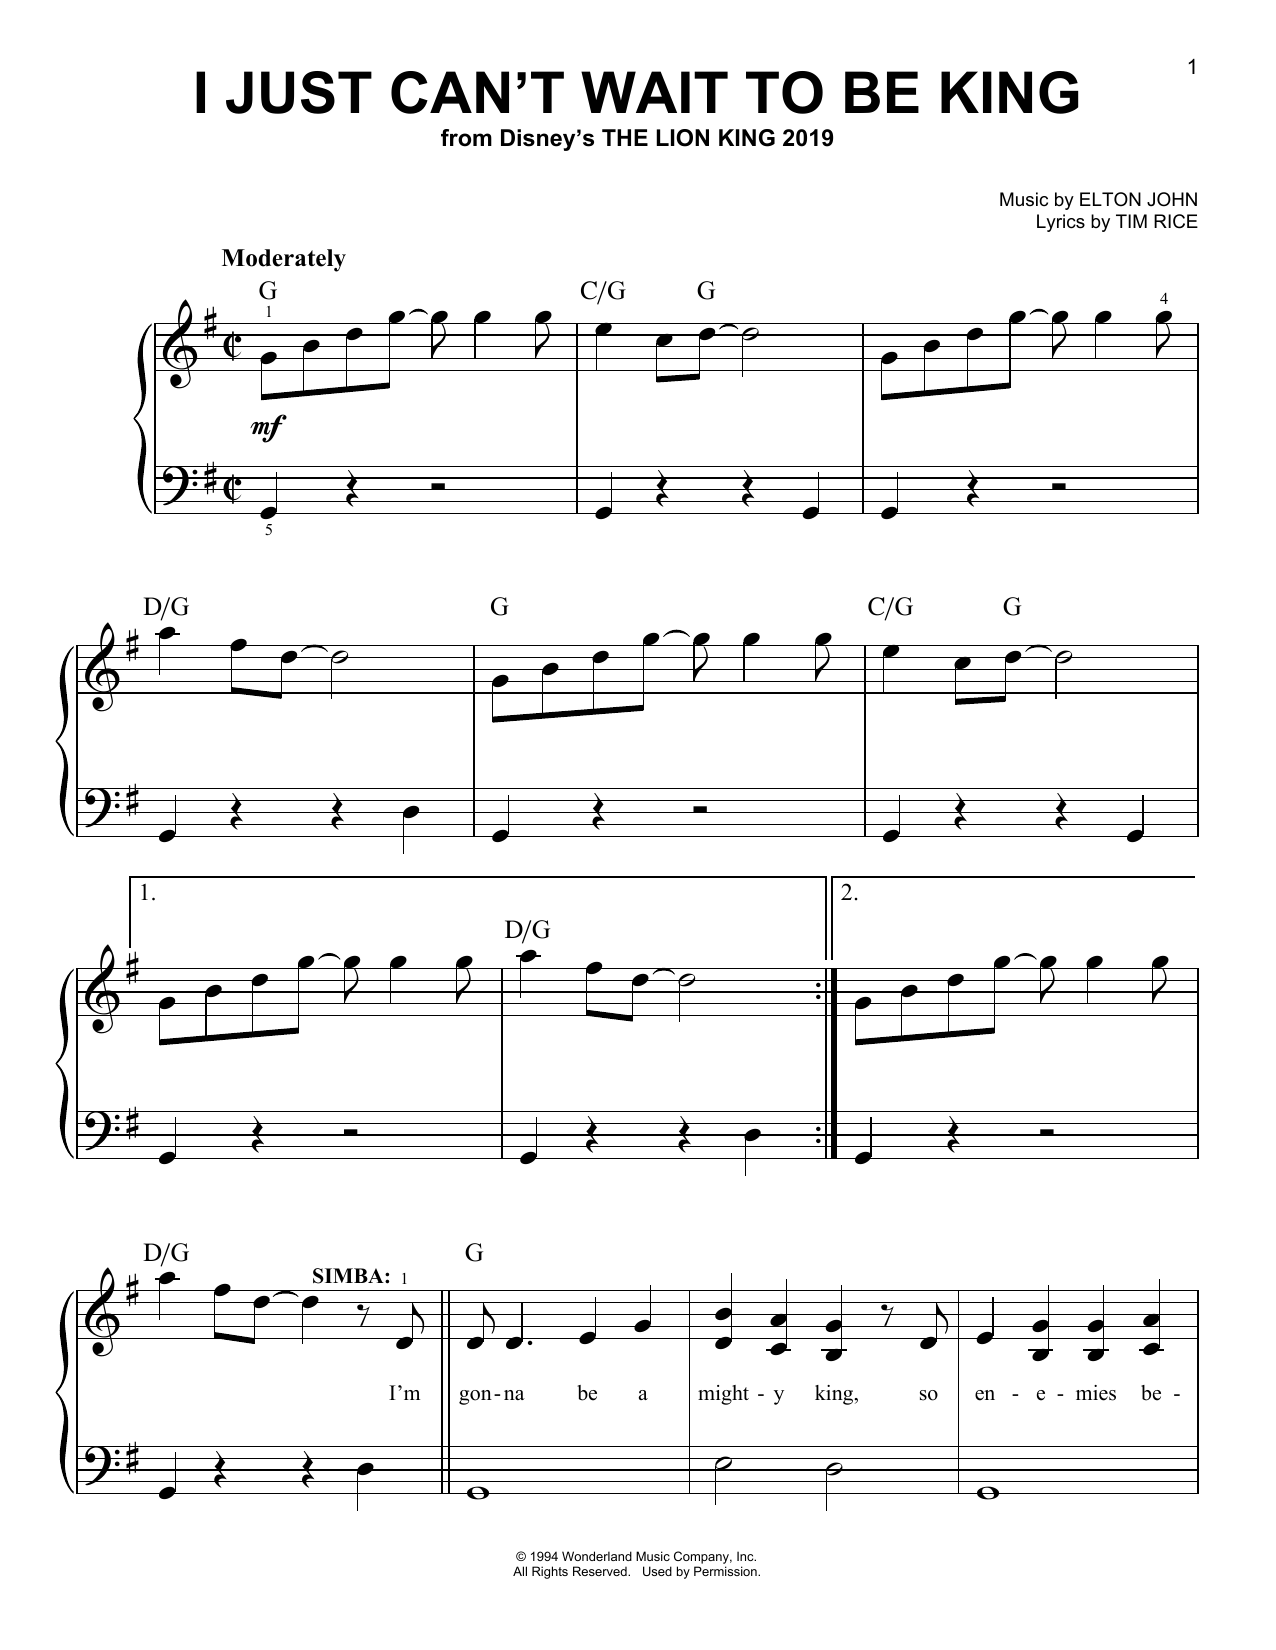 Elton John I Just Can't Wait To Be King (from The Lion King 2019) sheet music notes and chords